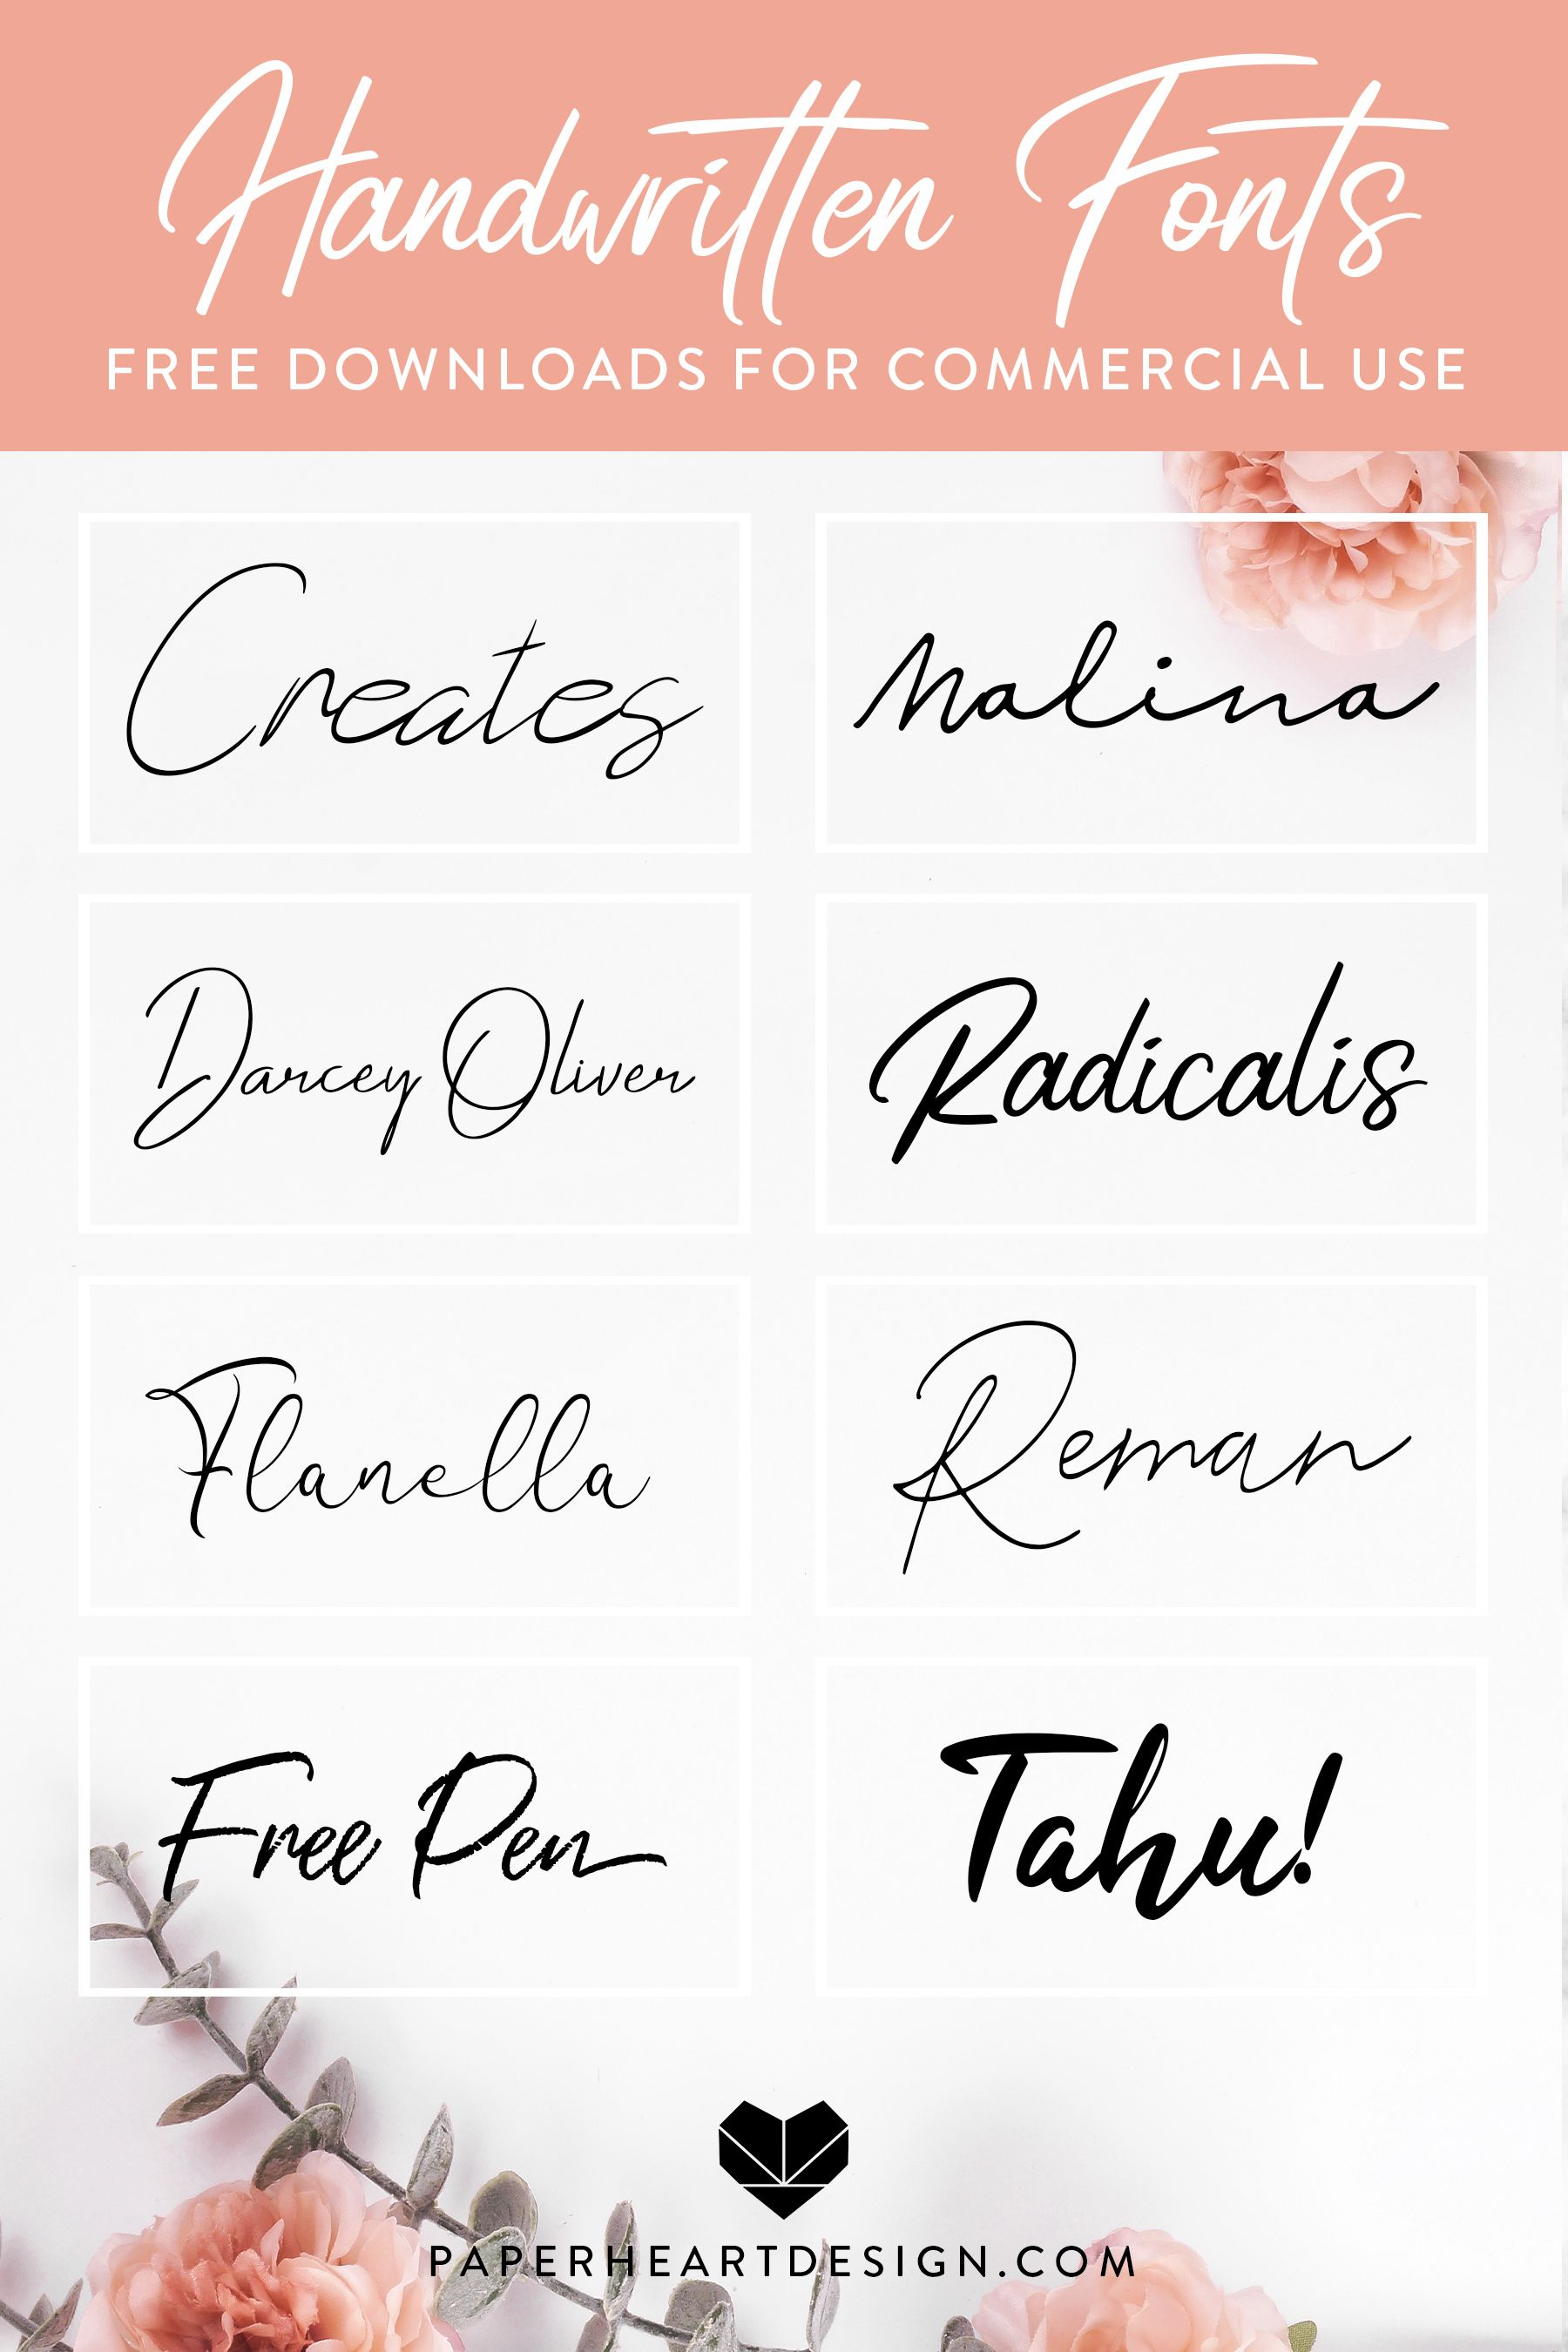 Handwritten Fonts Free for Commercial Use in 2020 Free